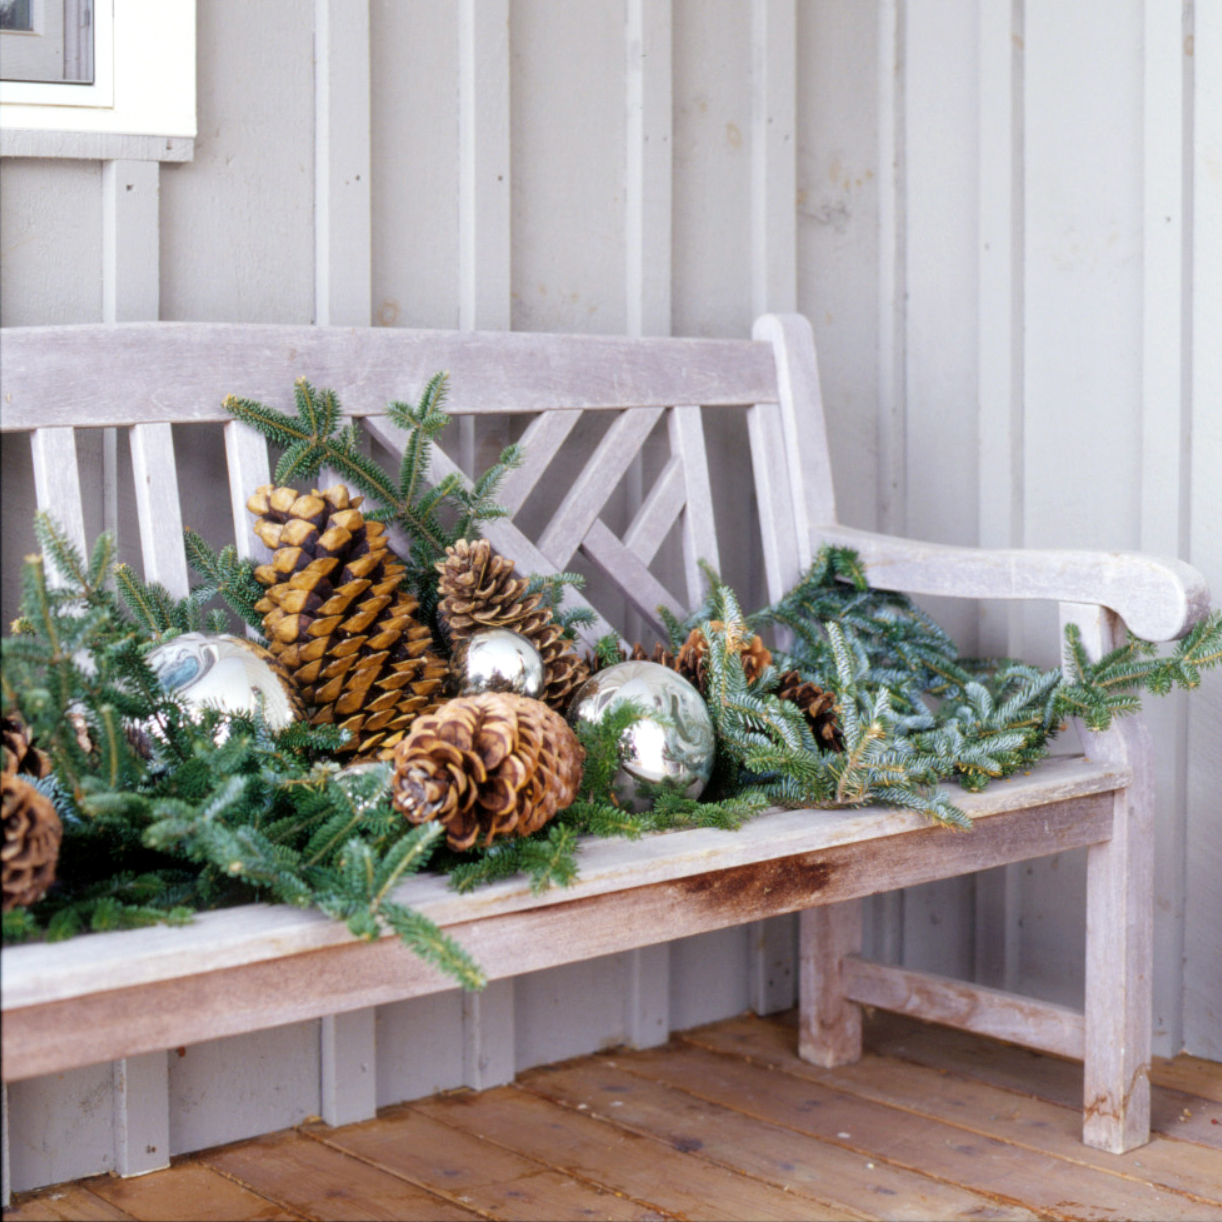 bench decorated with greenery pinecones and orbs